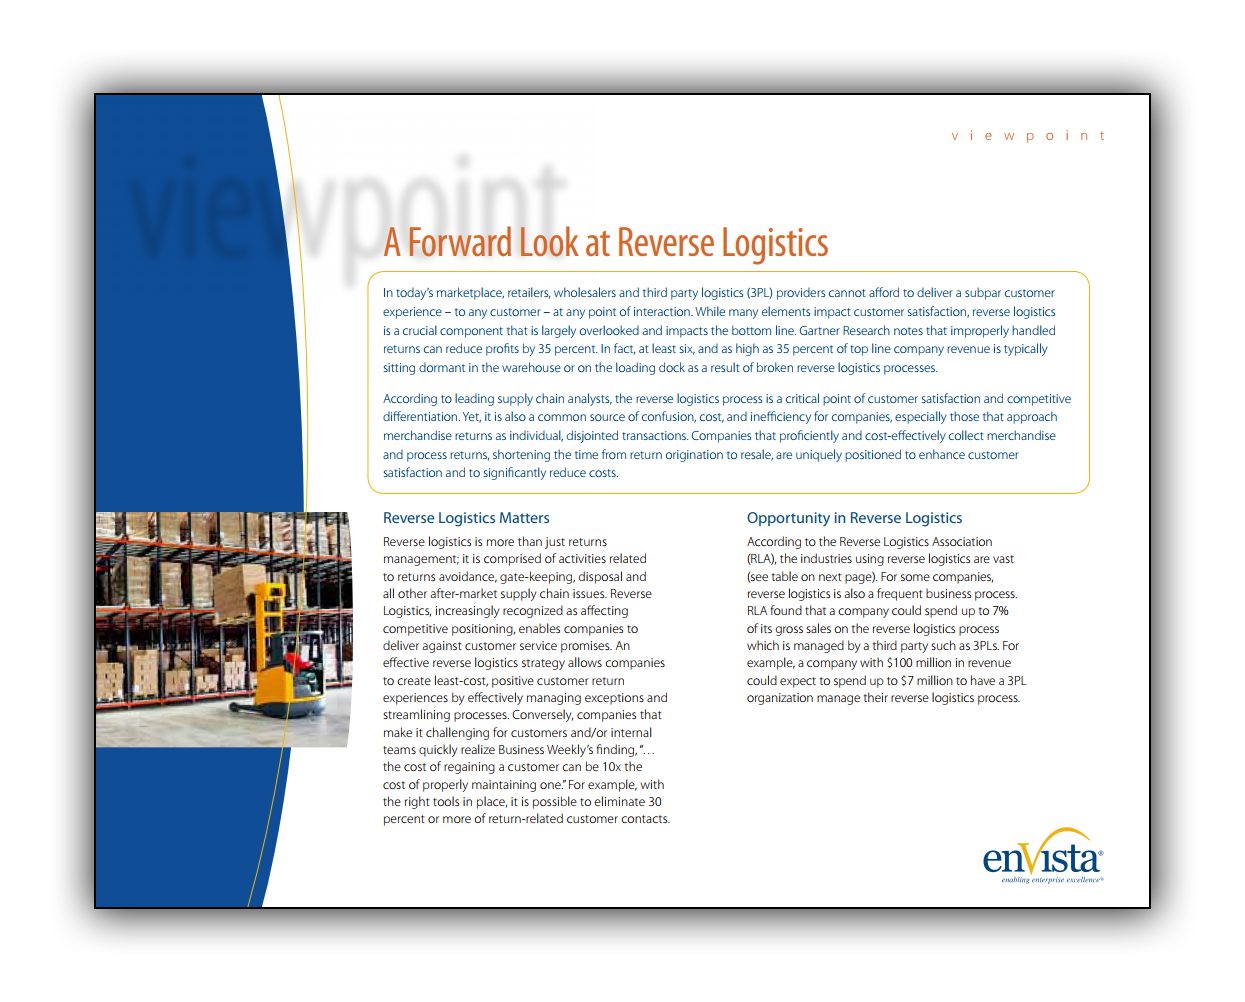 Image_a-forward-look-at-reverse-logistics.png